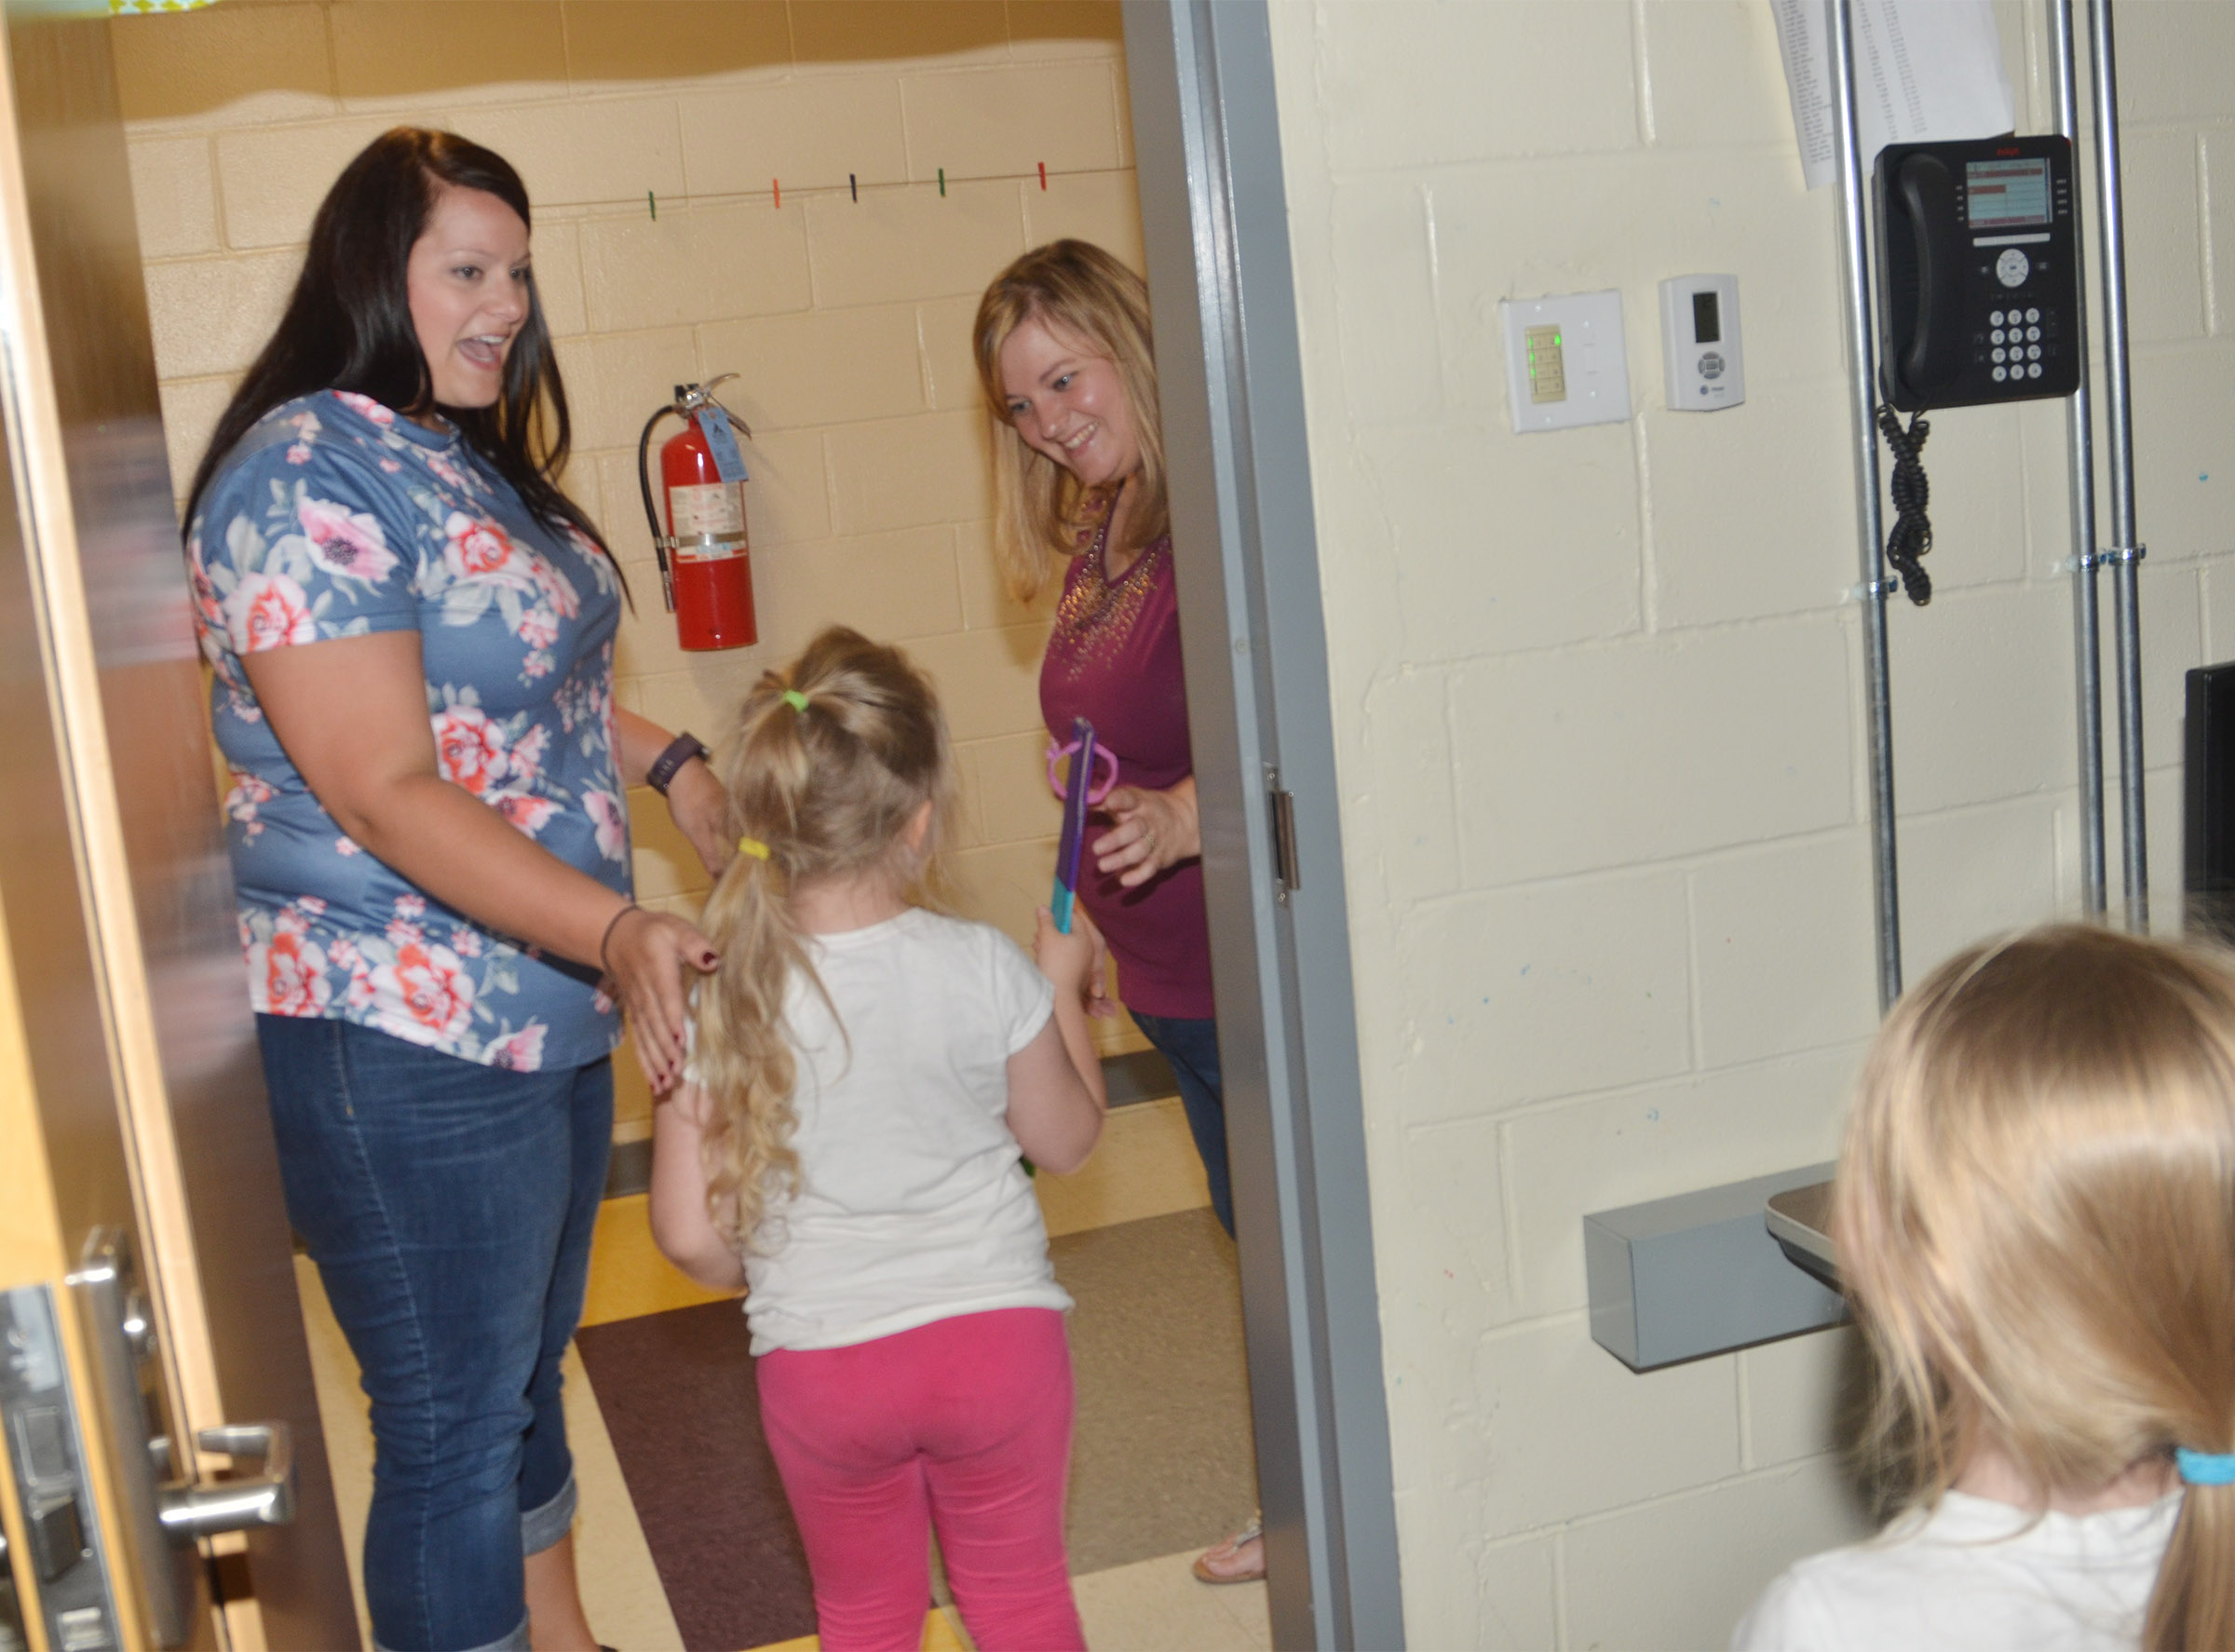 CES Explorers teacher Miriah Cox says goodbye to Kimberly Clark's kindergarten students as her class ends for the day.